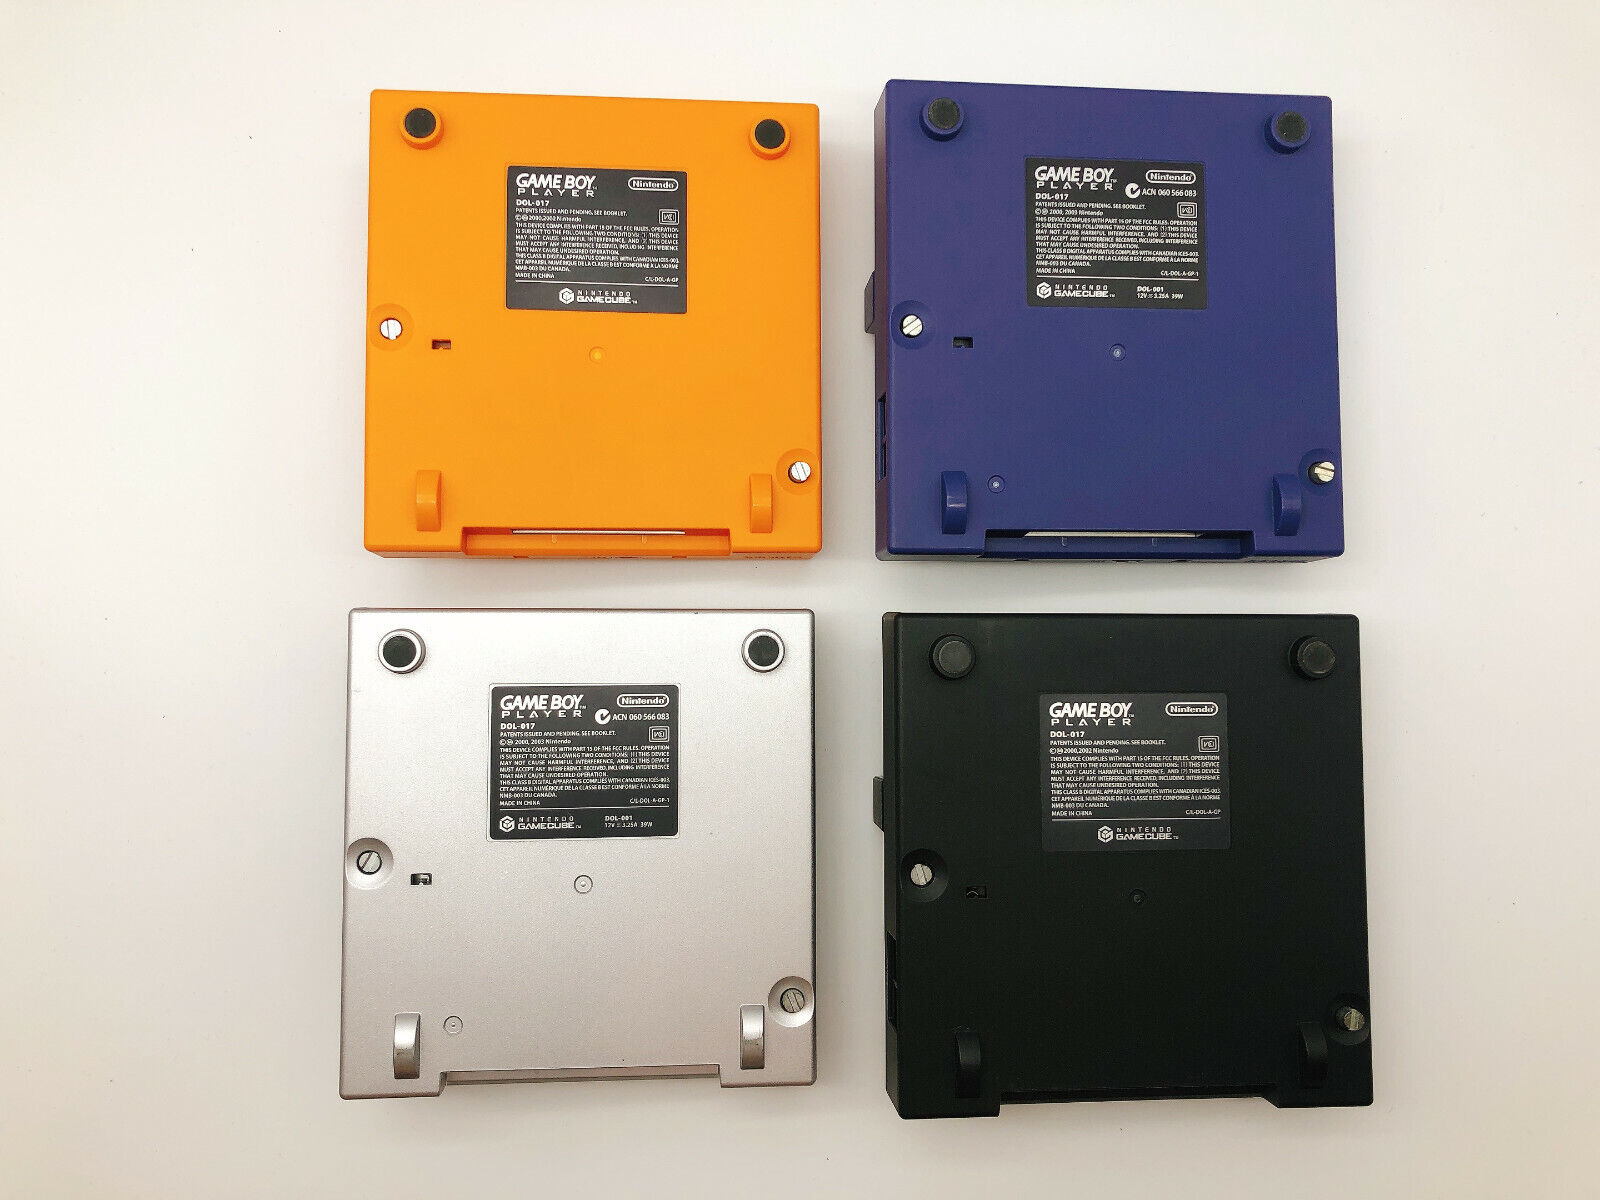 【4variations】Nintendo GameCube Gameboy Player & Startup Disc VIolet Orange